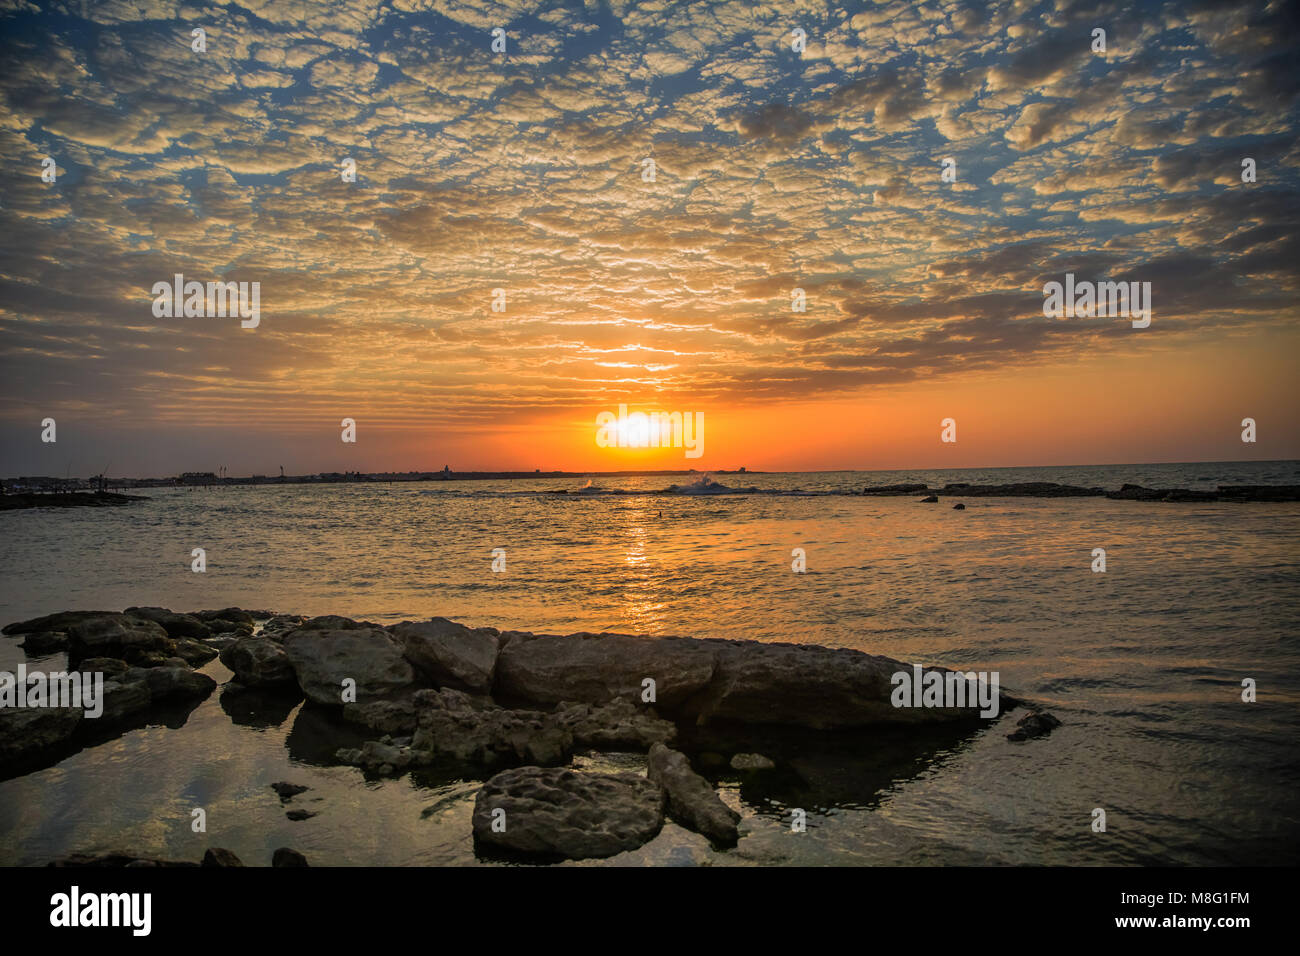 Warm, fire sunset paradise landscape over the sea in the Azerbaijan - Stock Image